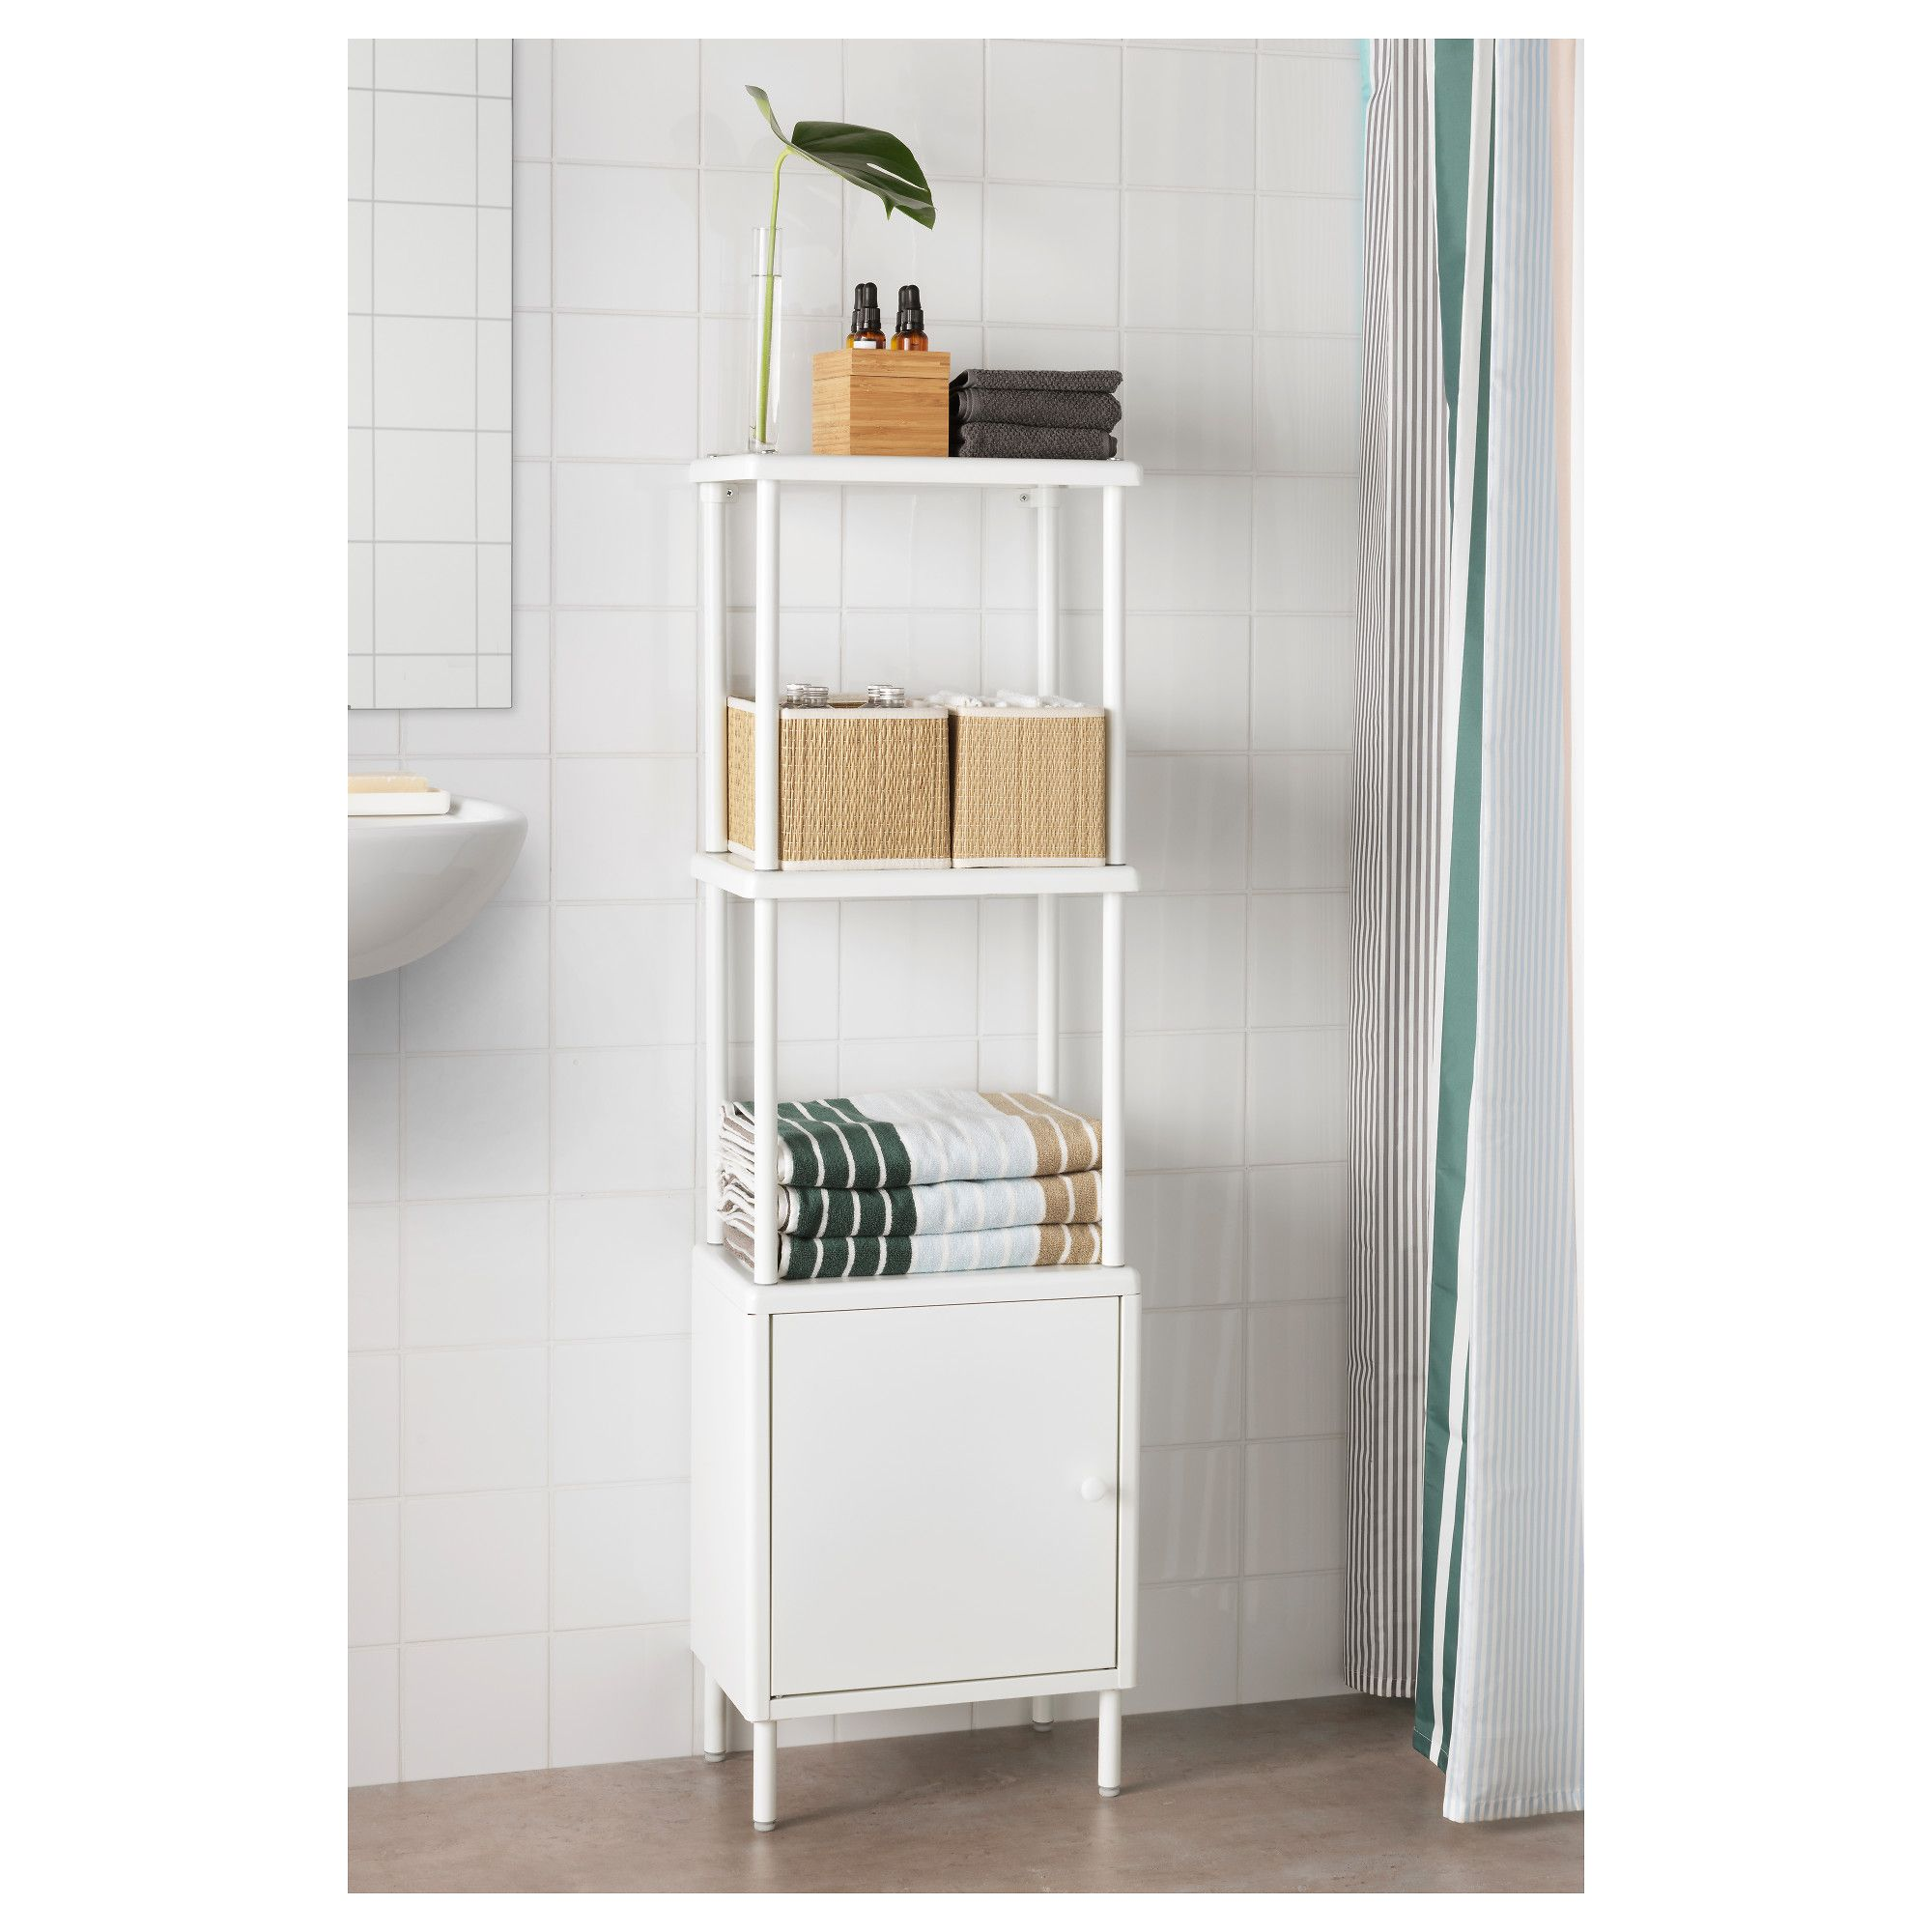 the best attitude a90c5 616f6 IKEA - DYNAN Shelving unit with cabinet white | Bathroom ...